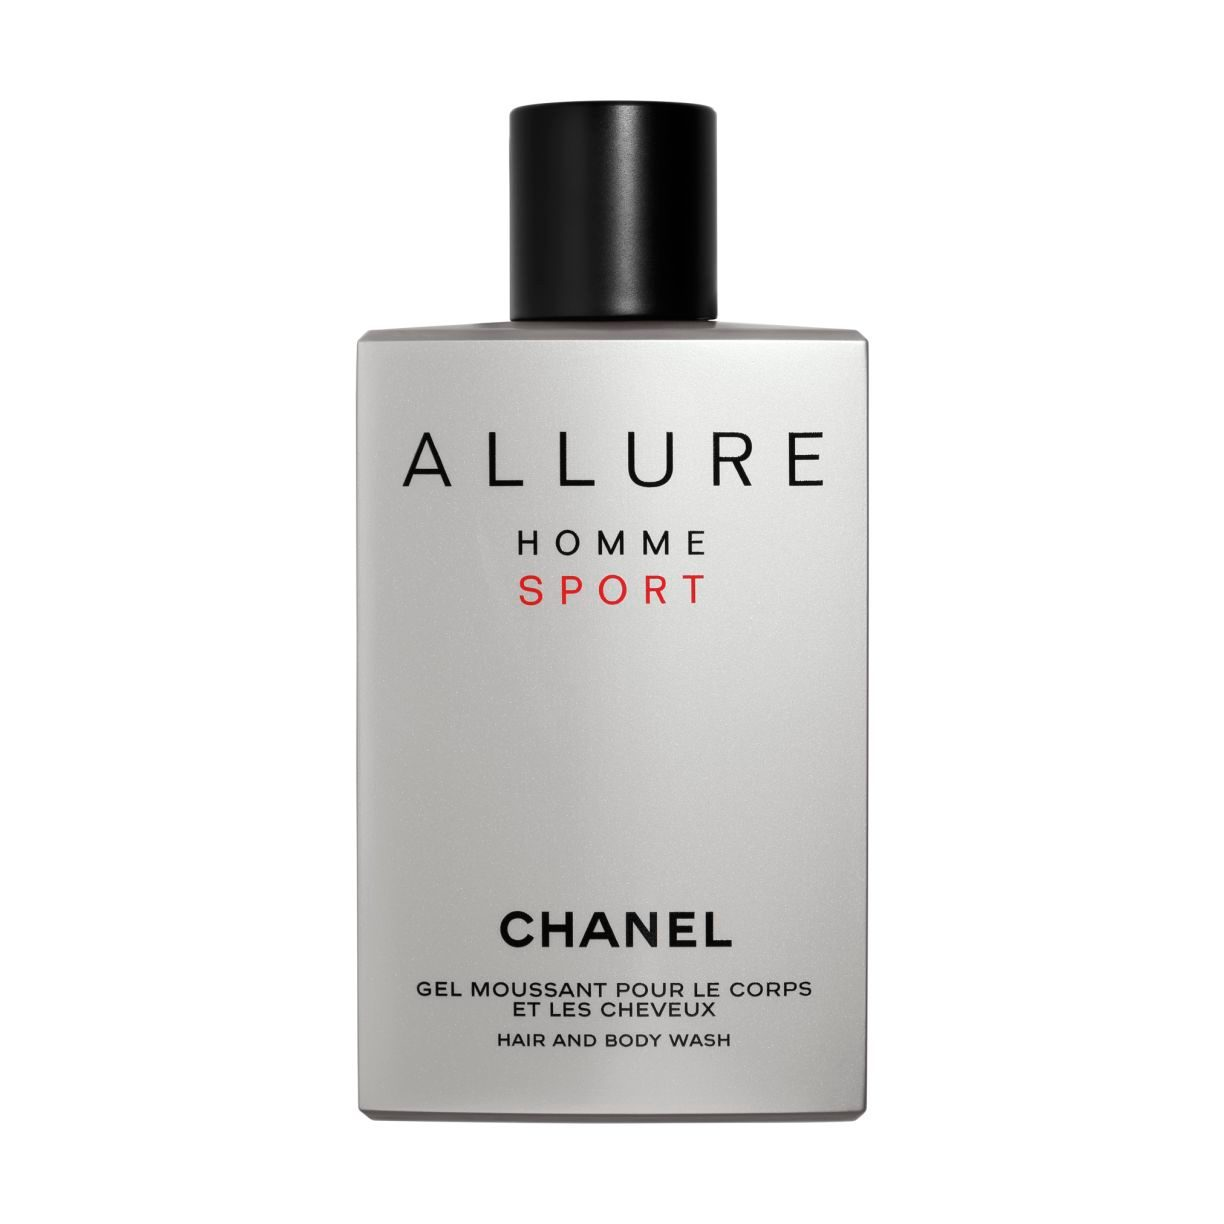 ALLURE HOMME SPORT SHOWER GEL